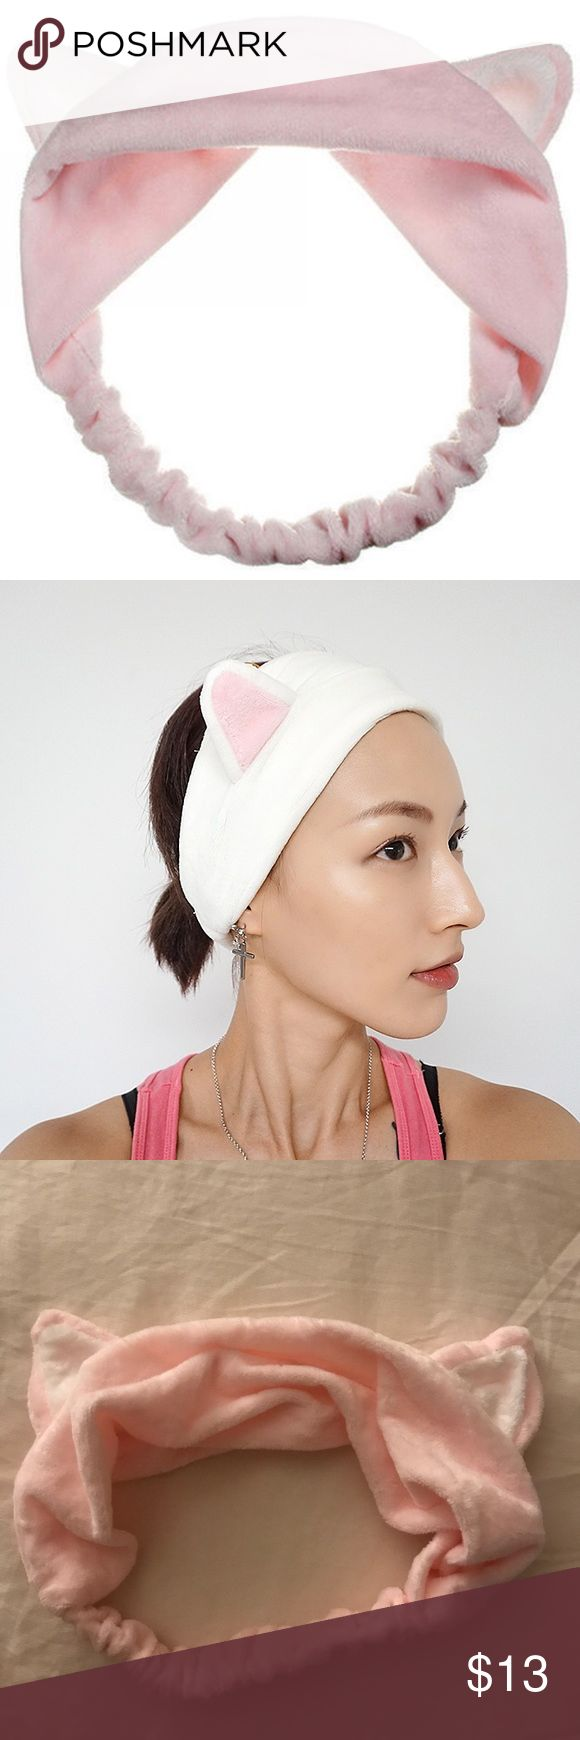 Cat Ears Hairband - Baby Pink NWOT - Brand new, never been used. Perfect to put up your hair when you wash your face, put on make up, go to the spa, enjoying a nice relaxing bath or putting on a facial mask. Can also be worn for fun; dress up or costume. You can even use it while you work out to keep your hair from falling in your face! Plush fabric. Elastic band. Approx 10x4in. Accessories Hair Accessories